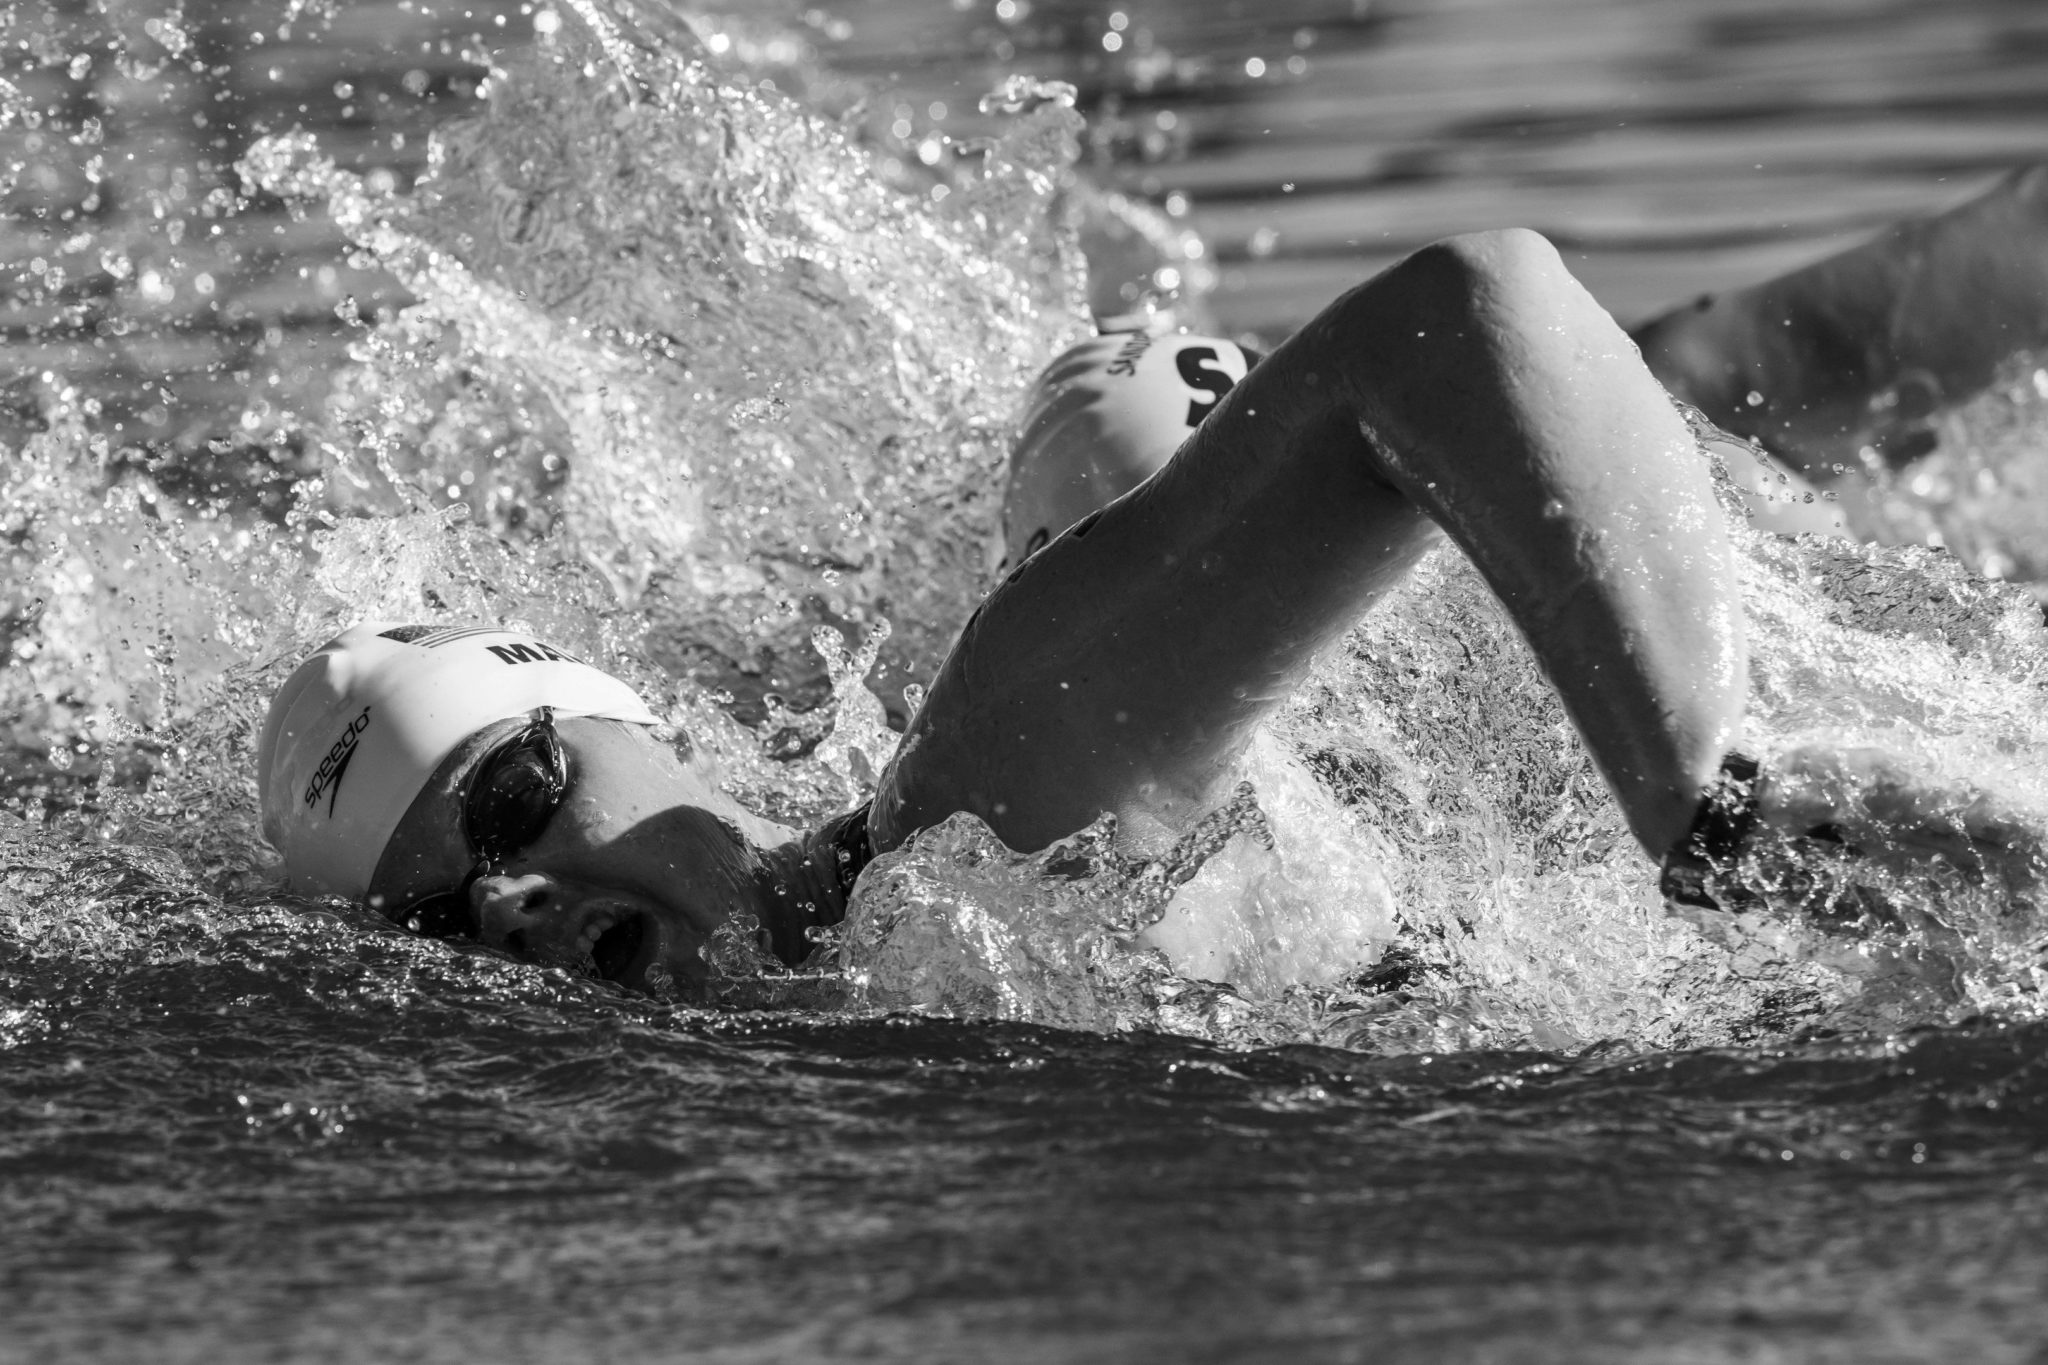 Becca Mann Aims To Become First Swimmer To Complete The Maui Nui Channel Swim